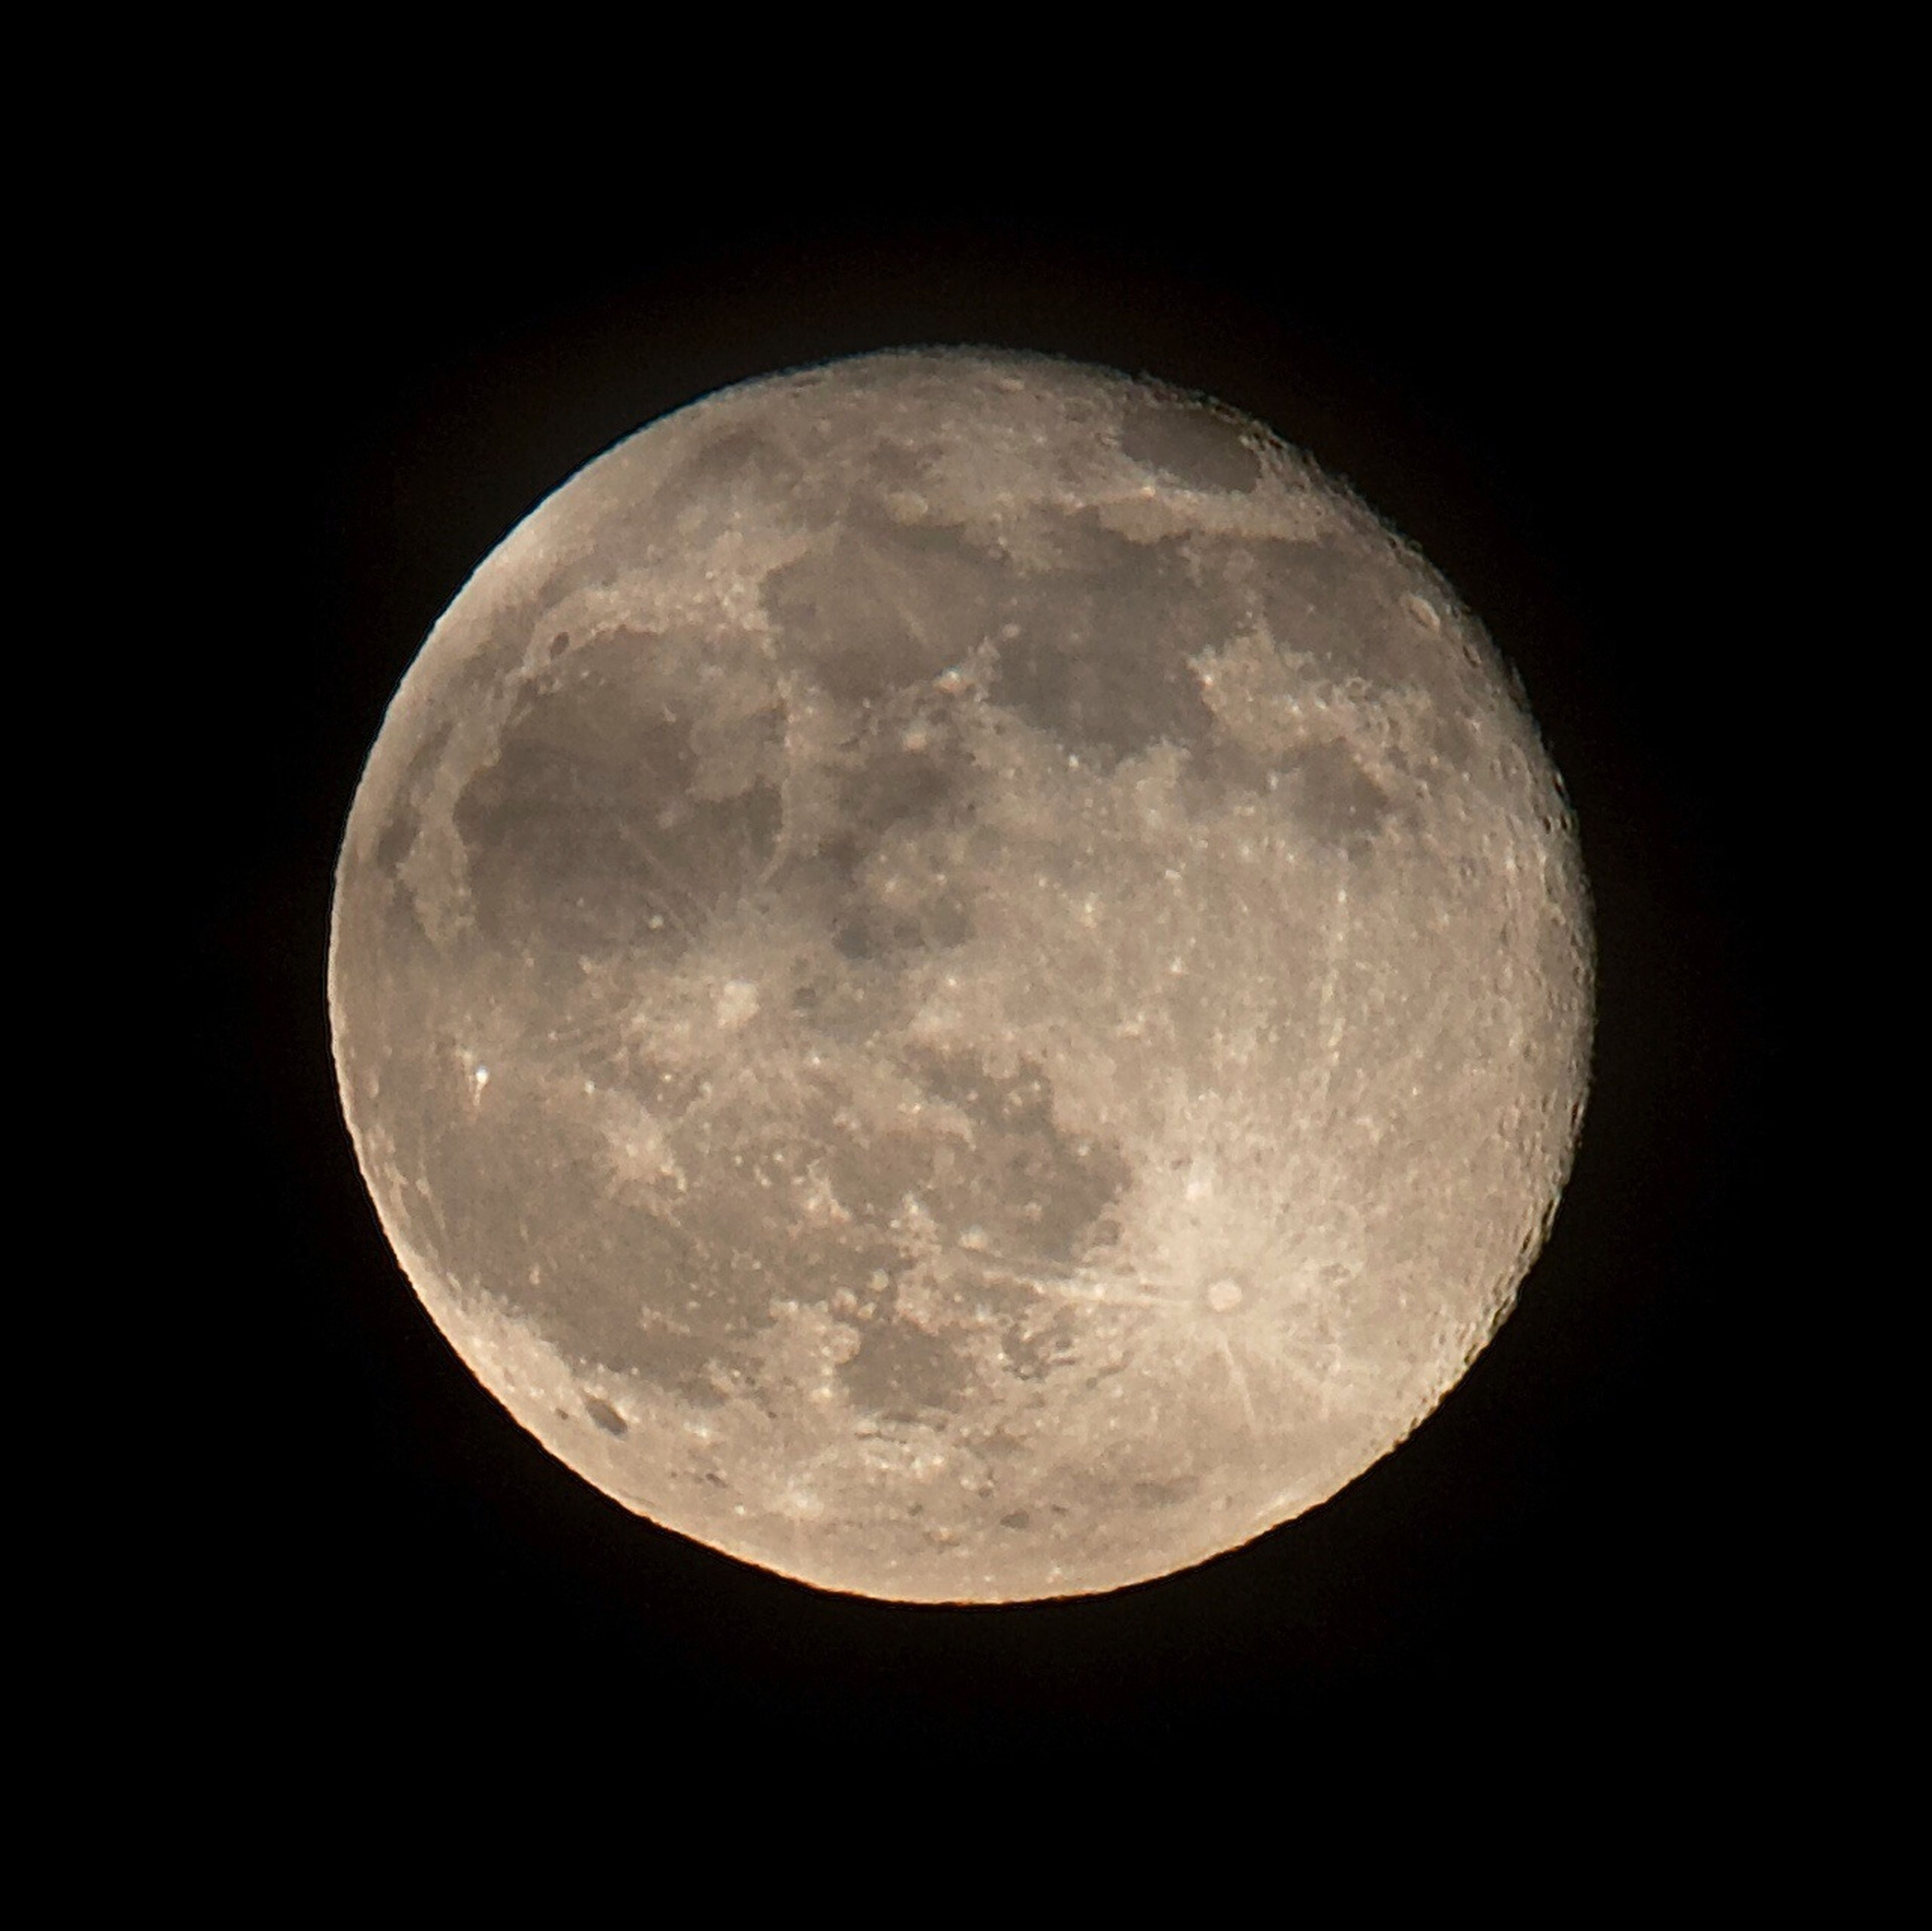 astronomy, moon, night, full moon, planetary moon, circle, moon surface, space exploration, low angle view, sphere, discovery, beauty in nature, dark, sky, scenics, nature, tranquil scene, tranquility, majestic, exploration